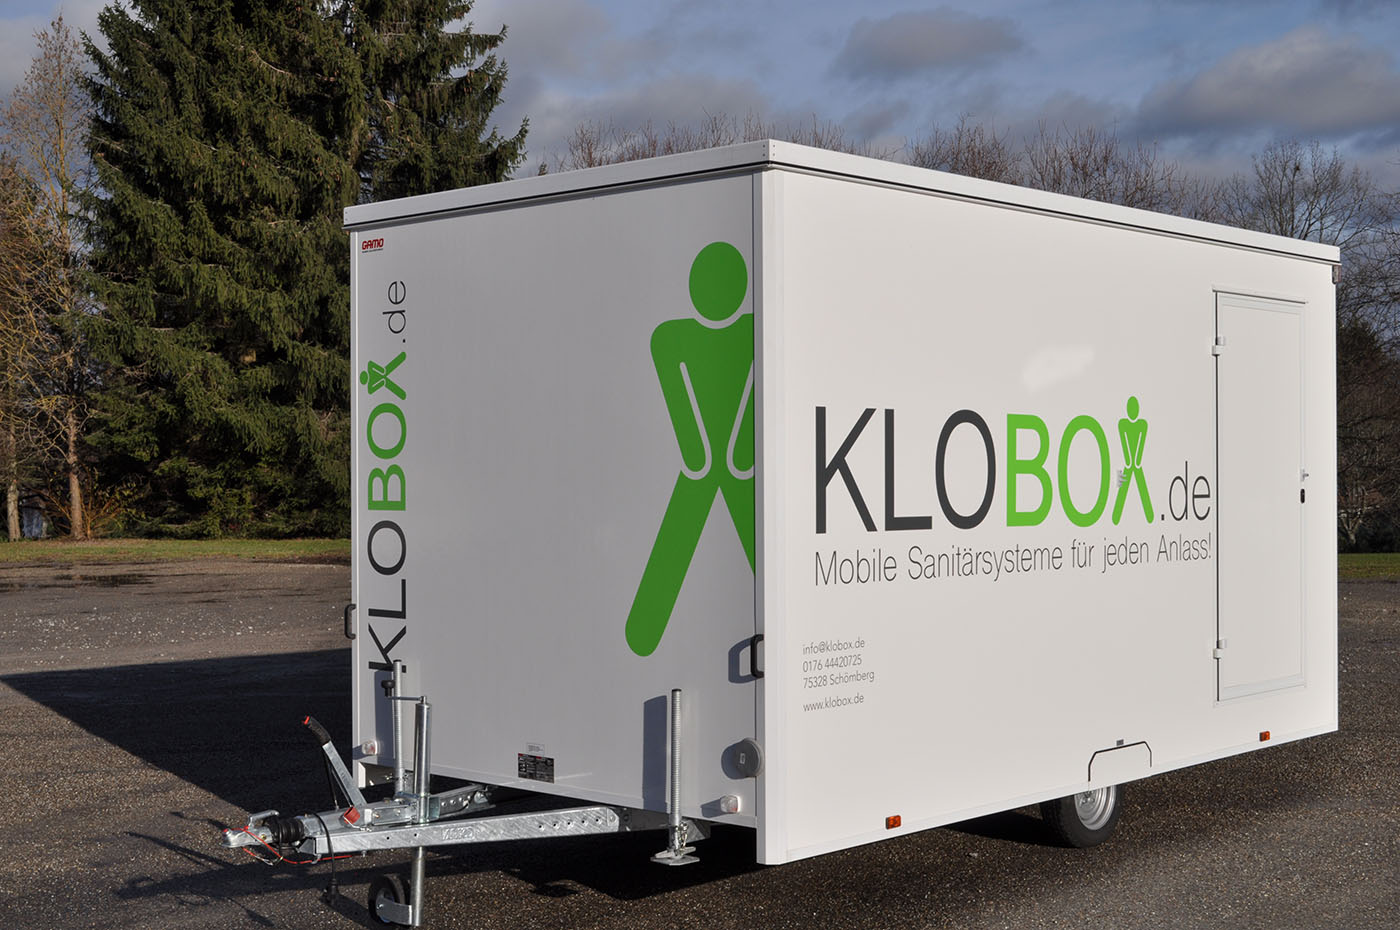 Toilettenwagen - klobox.de #09